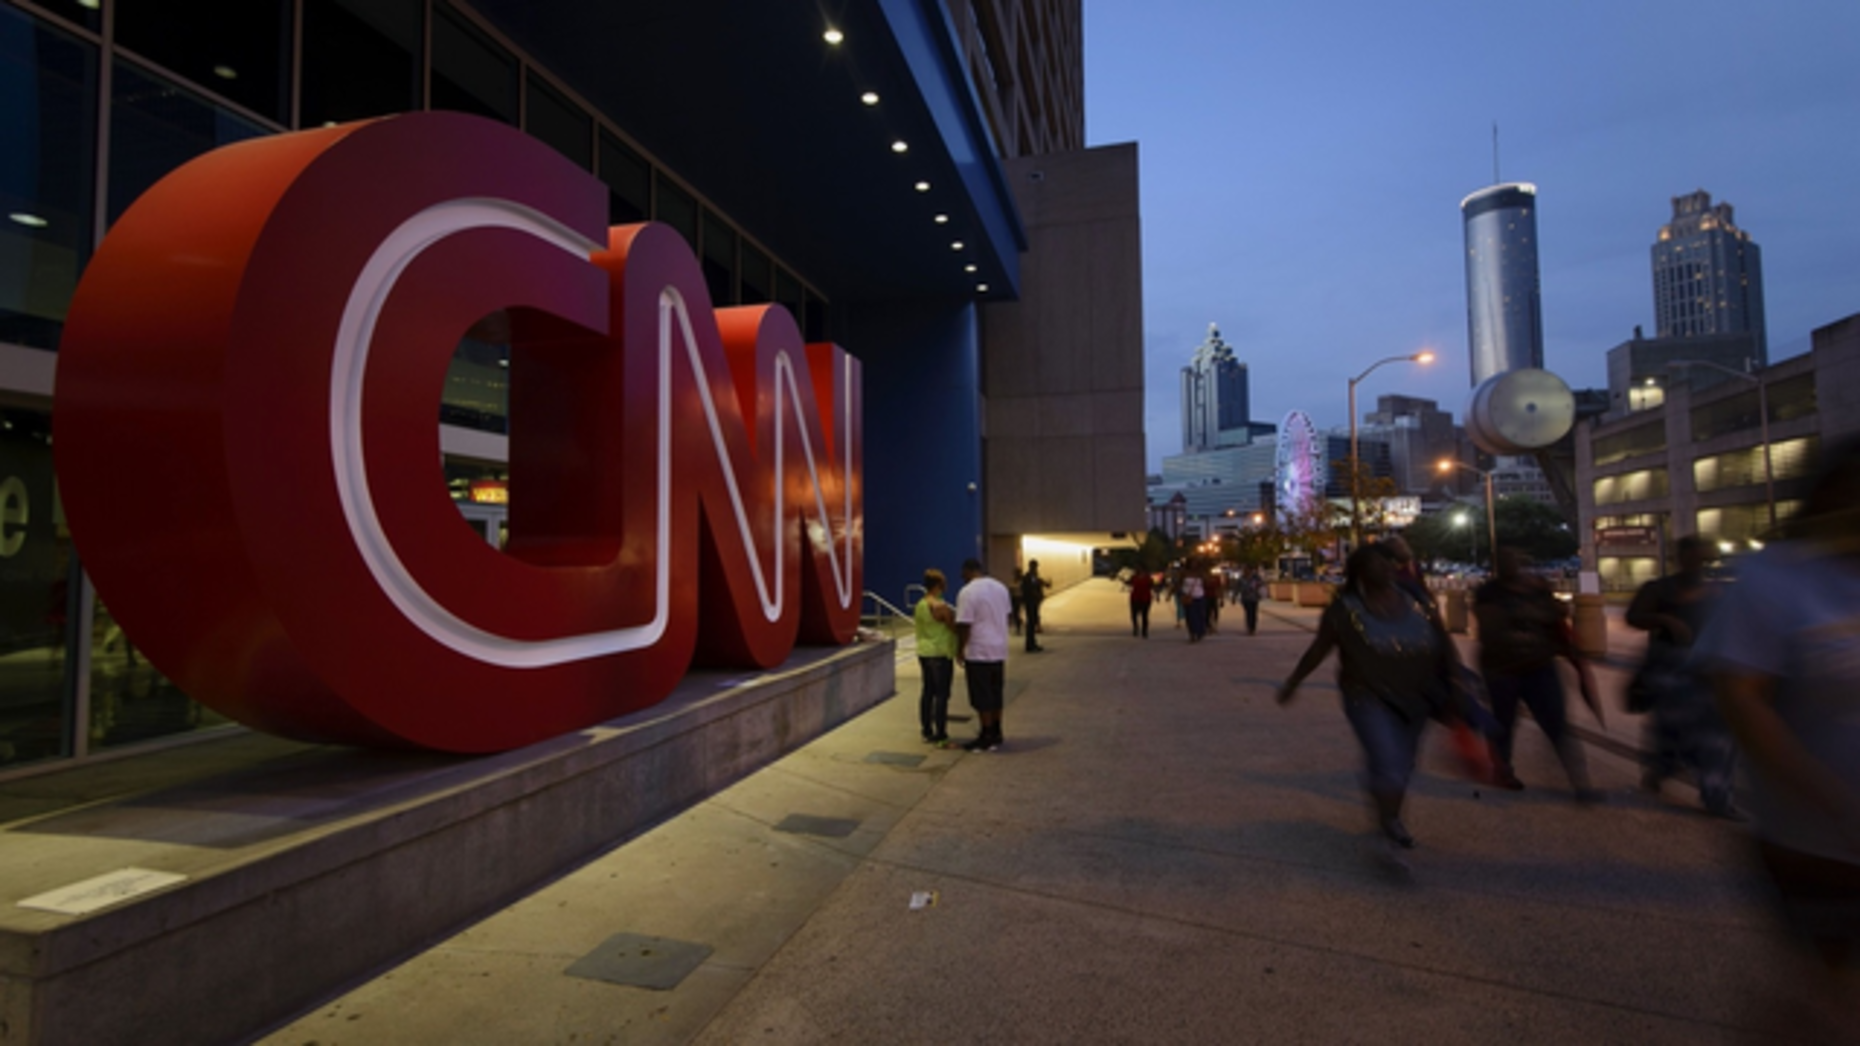 CNN's offices in Atlanta. Photo by Bloomberg